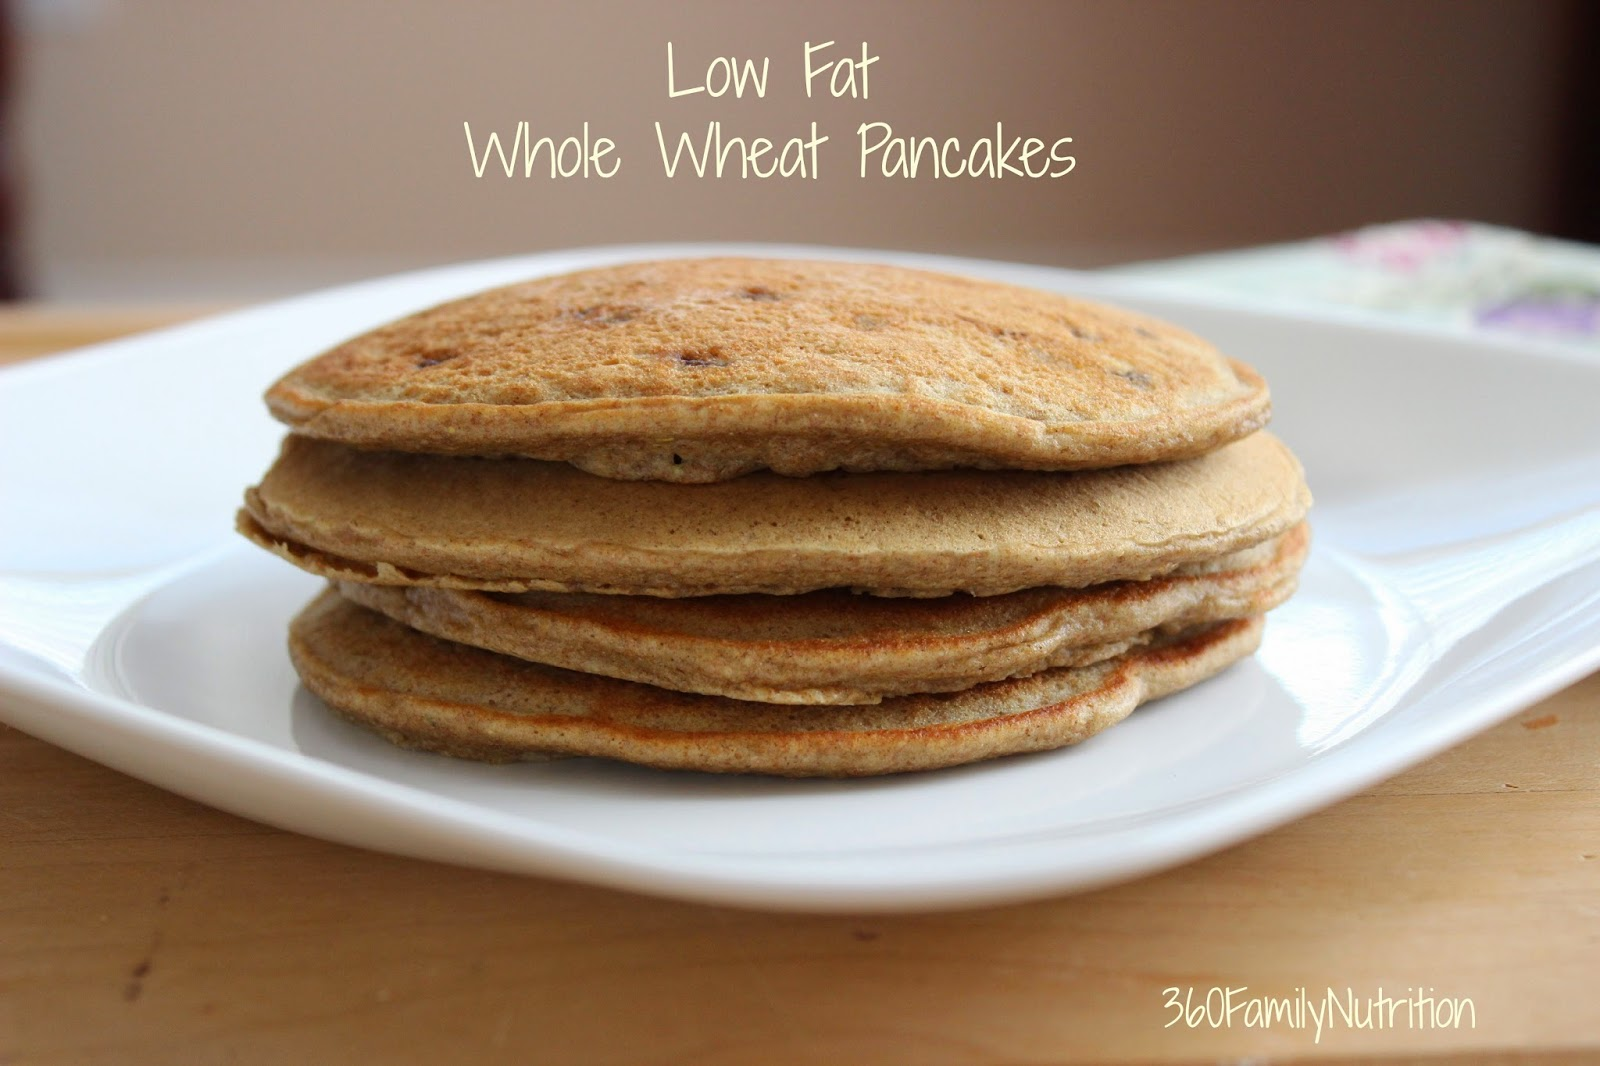 360FamilyNutrition: The Best Low Fat Whole Grain Pancakes